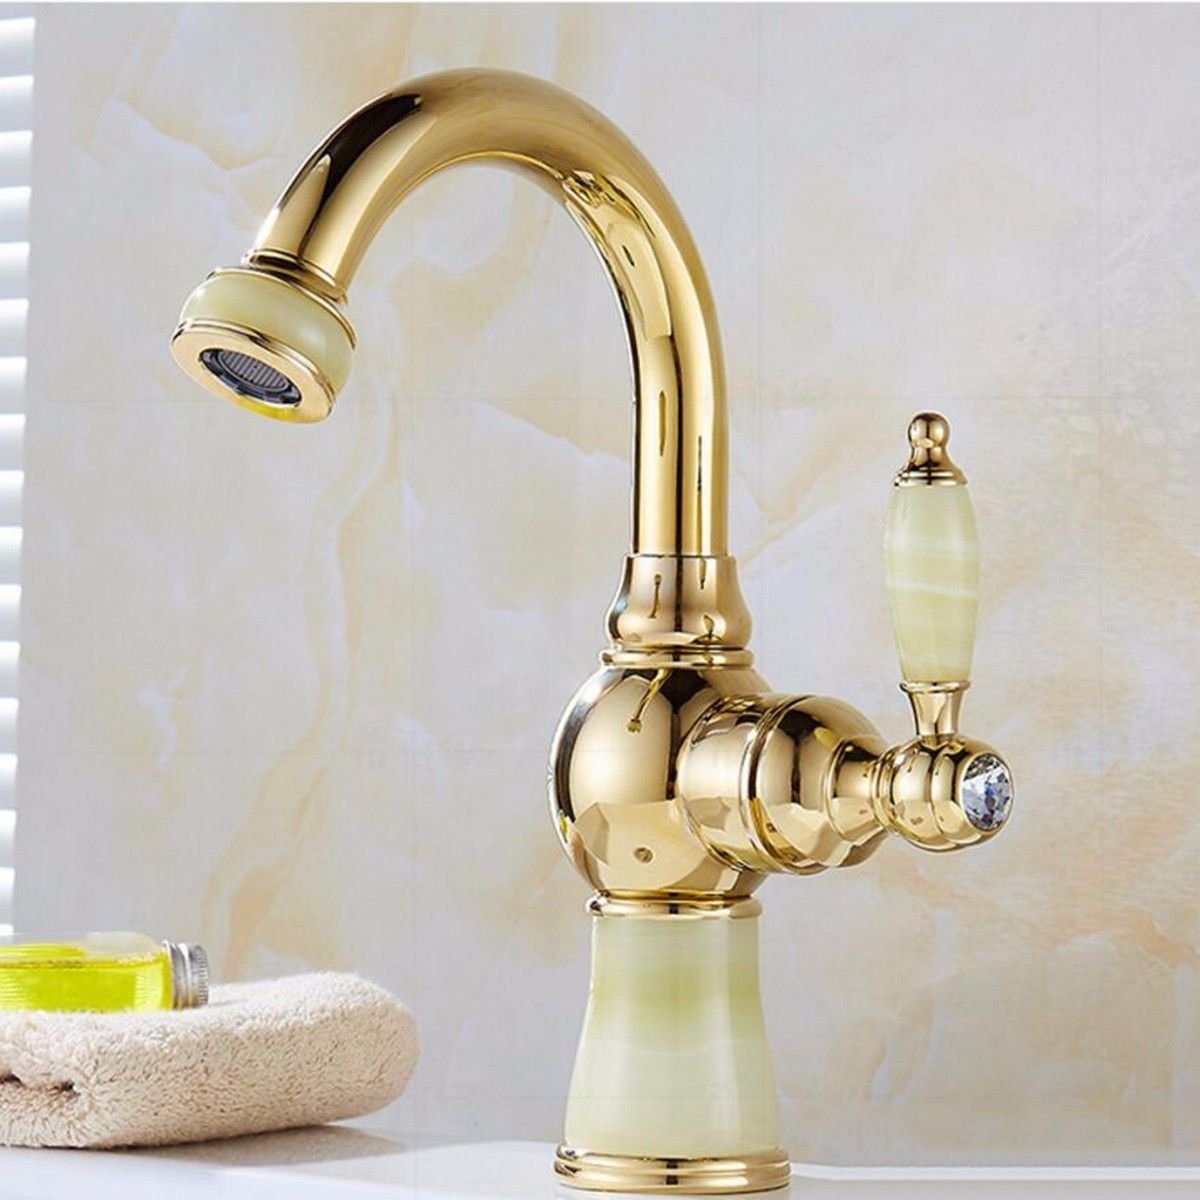 Oudan Basin Mixer Tap Bathroom Sink Faucet The bathrooms, hot and cold water taps continental gold jade full brass swivel faucet basin sink surface basin mixer, B (Color : B)